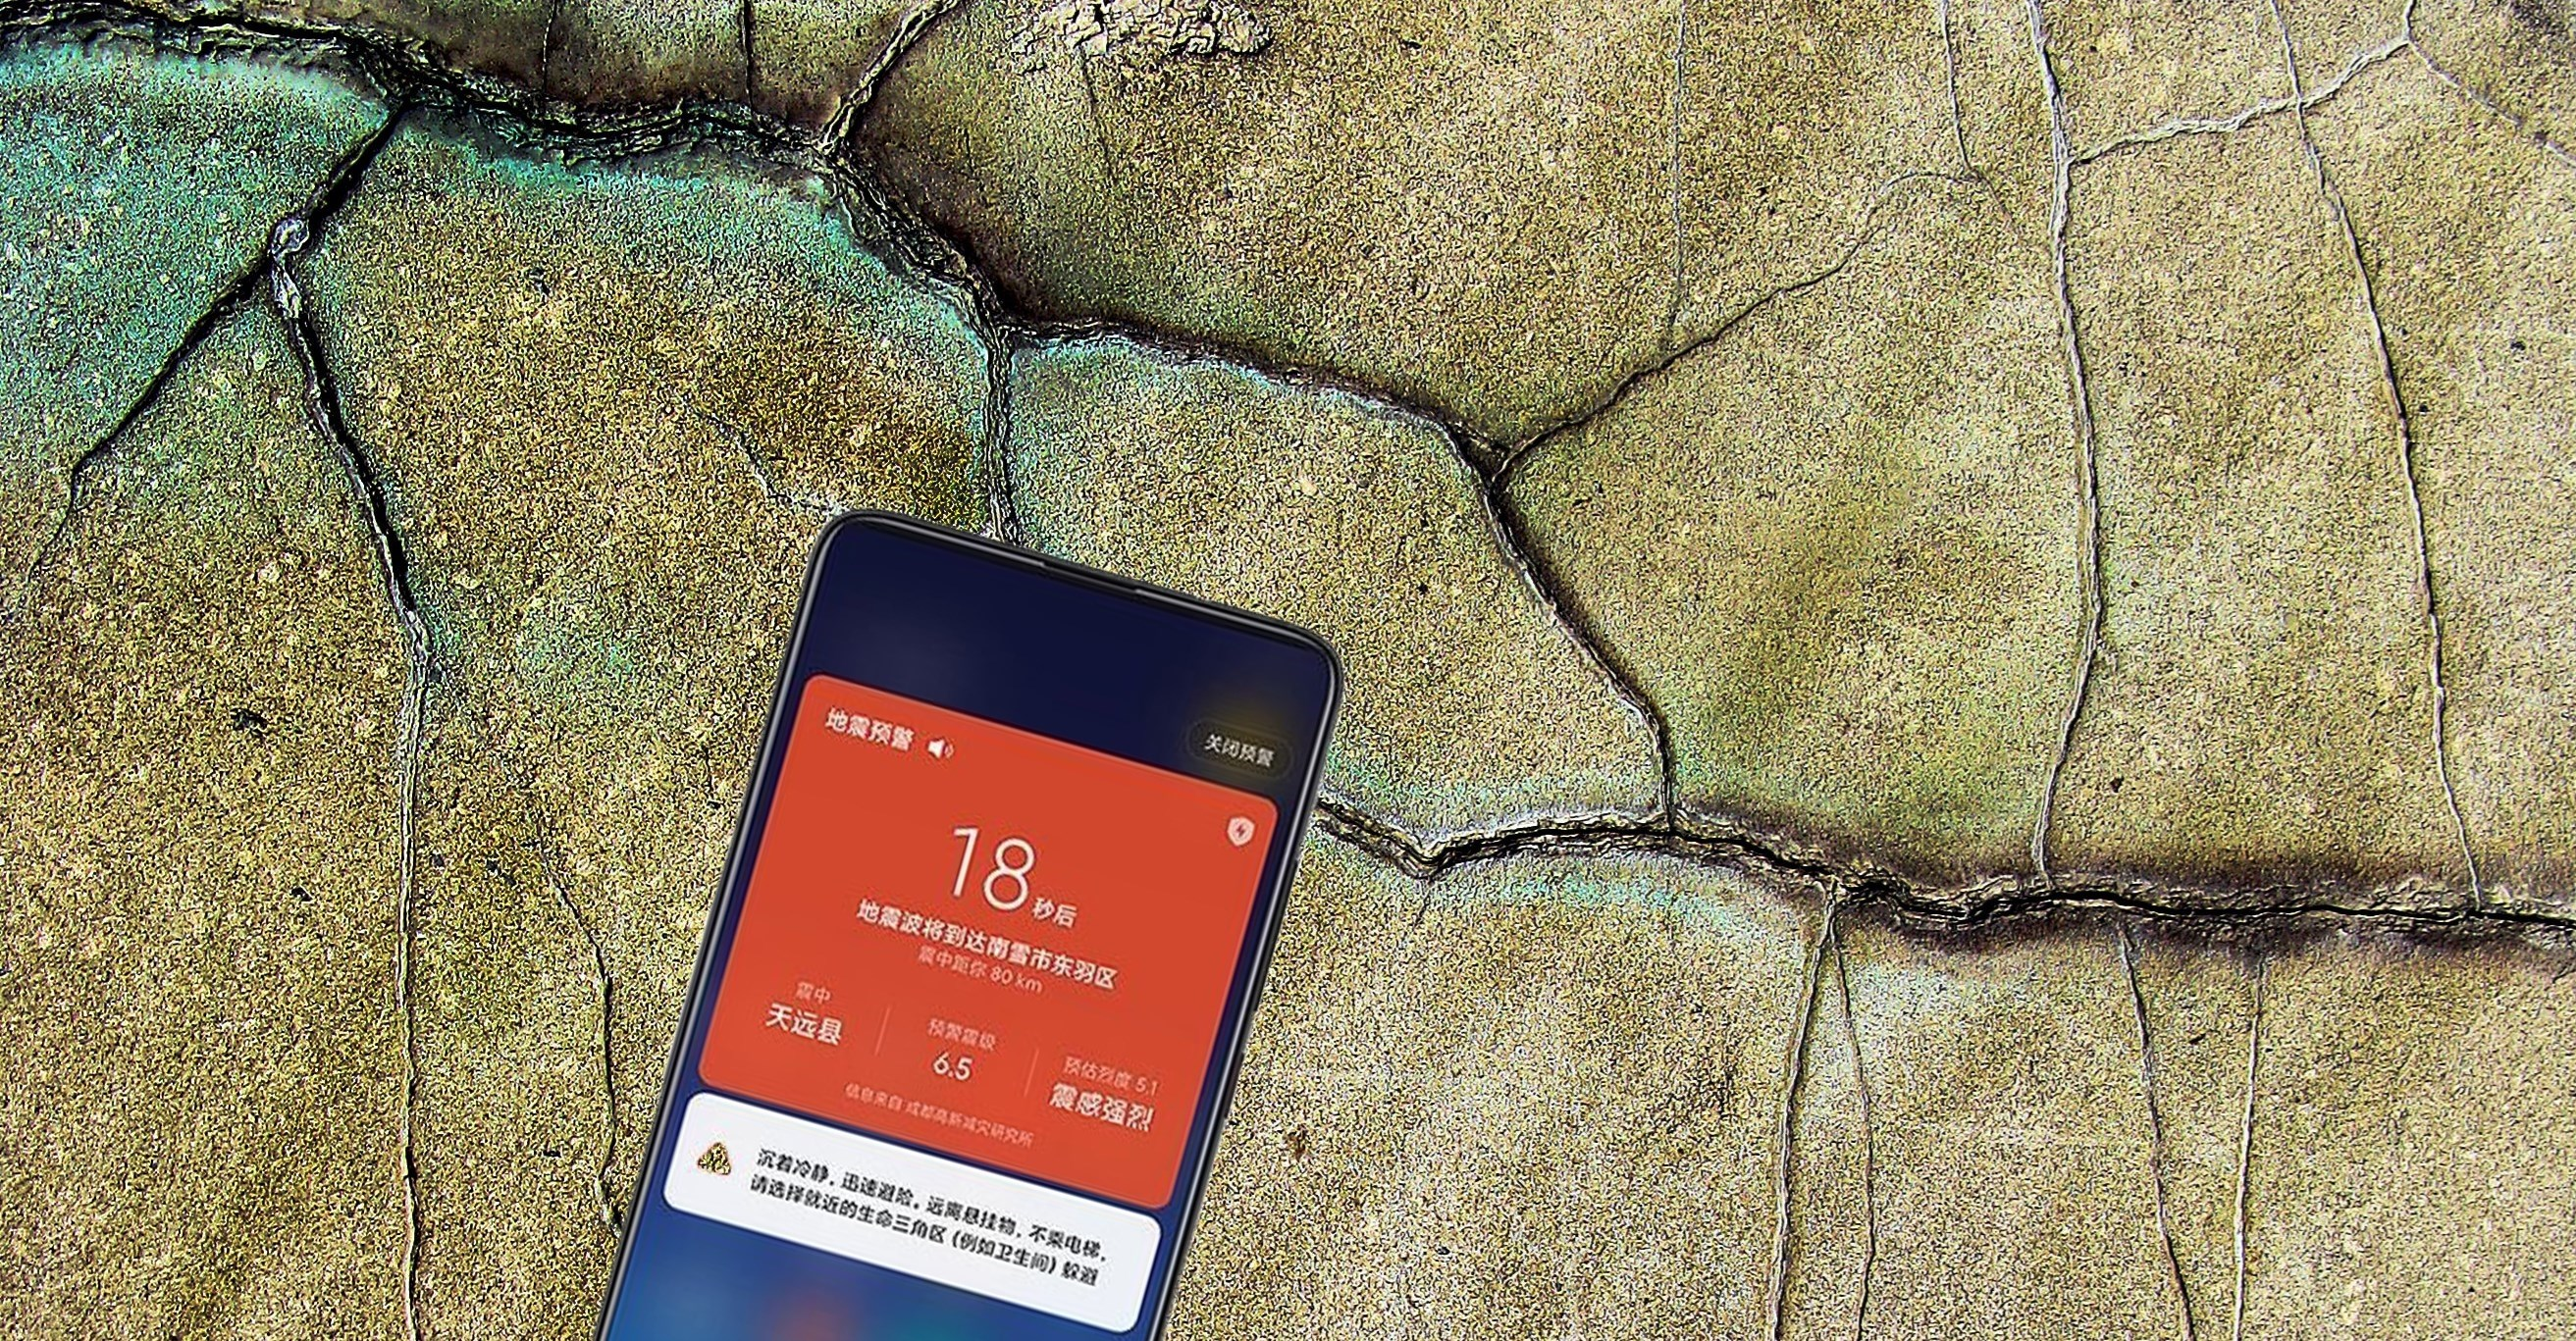 Xiaomi's new technology can monitor seismic activity and predict earthquakes long enough before they occur.